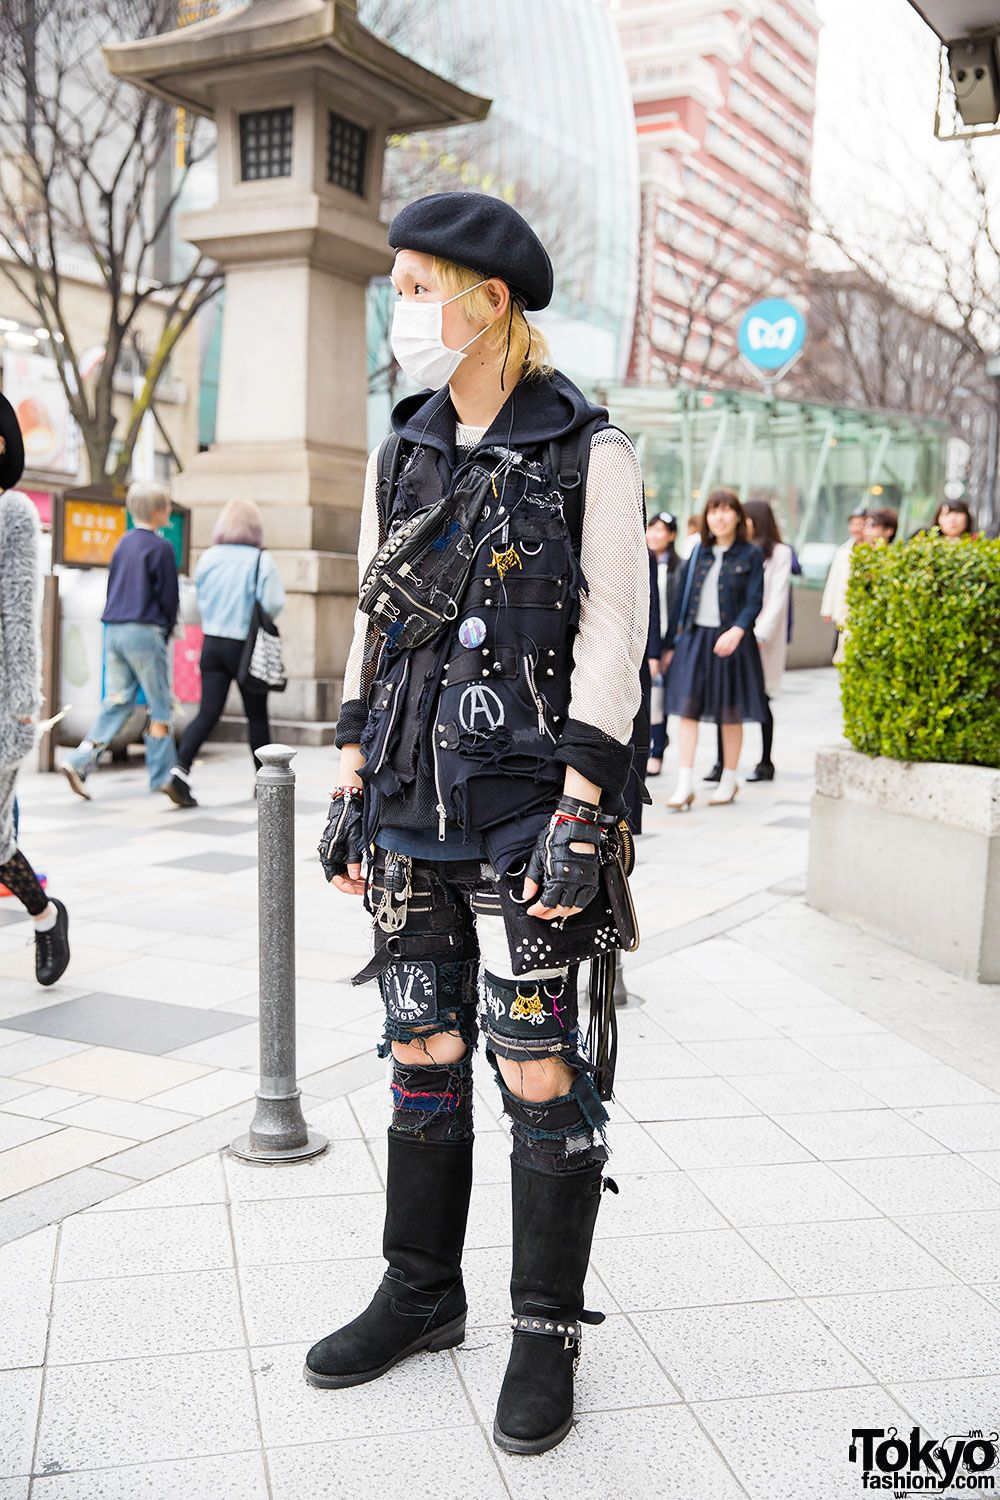 Harajuku Guy in Patched Punk Fashion w/ Beret & Boots  Punk